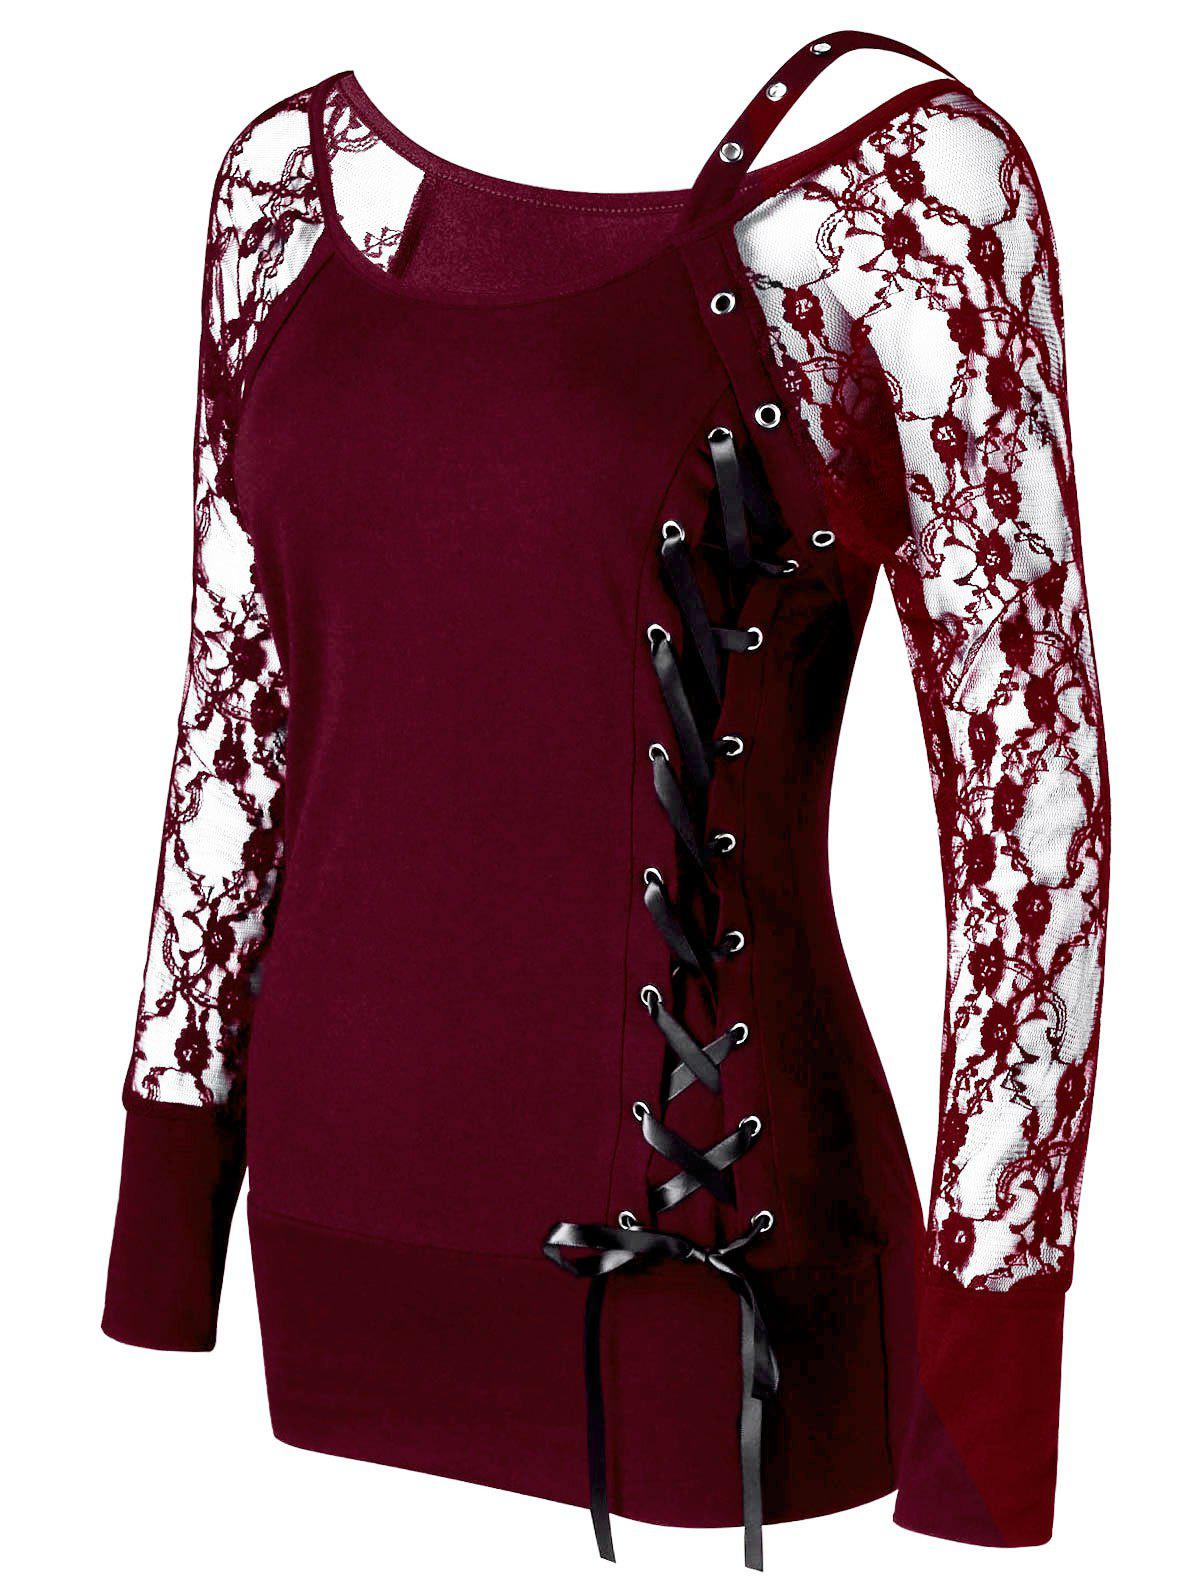 Raglan Sleeve Fitted Lace Up TopWOMEN<br><br>Size: 2XL; Color: WINE RED; Material: Polyester,Spandex; Shirt Length: Regular; Sleeve Length: Full; Collar: Scoop Neck; Style: Fashion; Embellishment: Lace; Pattern Type: Solid; Season: Fall,Spring,Summer; Weight: 0.2400kg; Package Contents: 1 x Top;